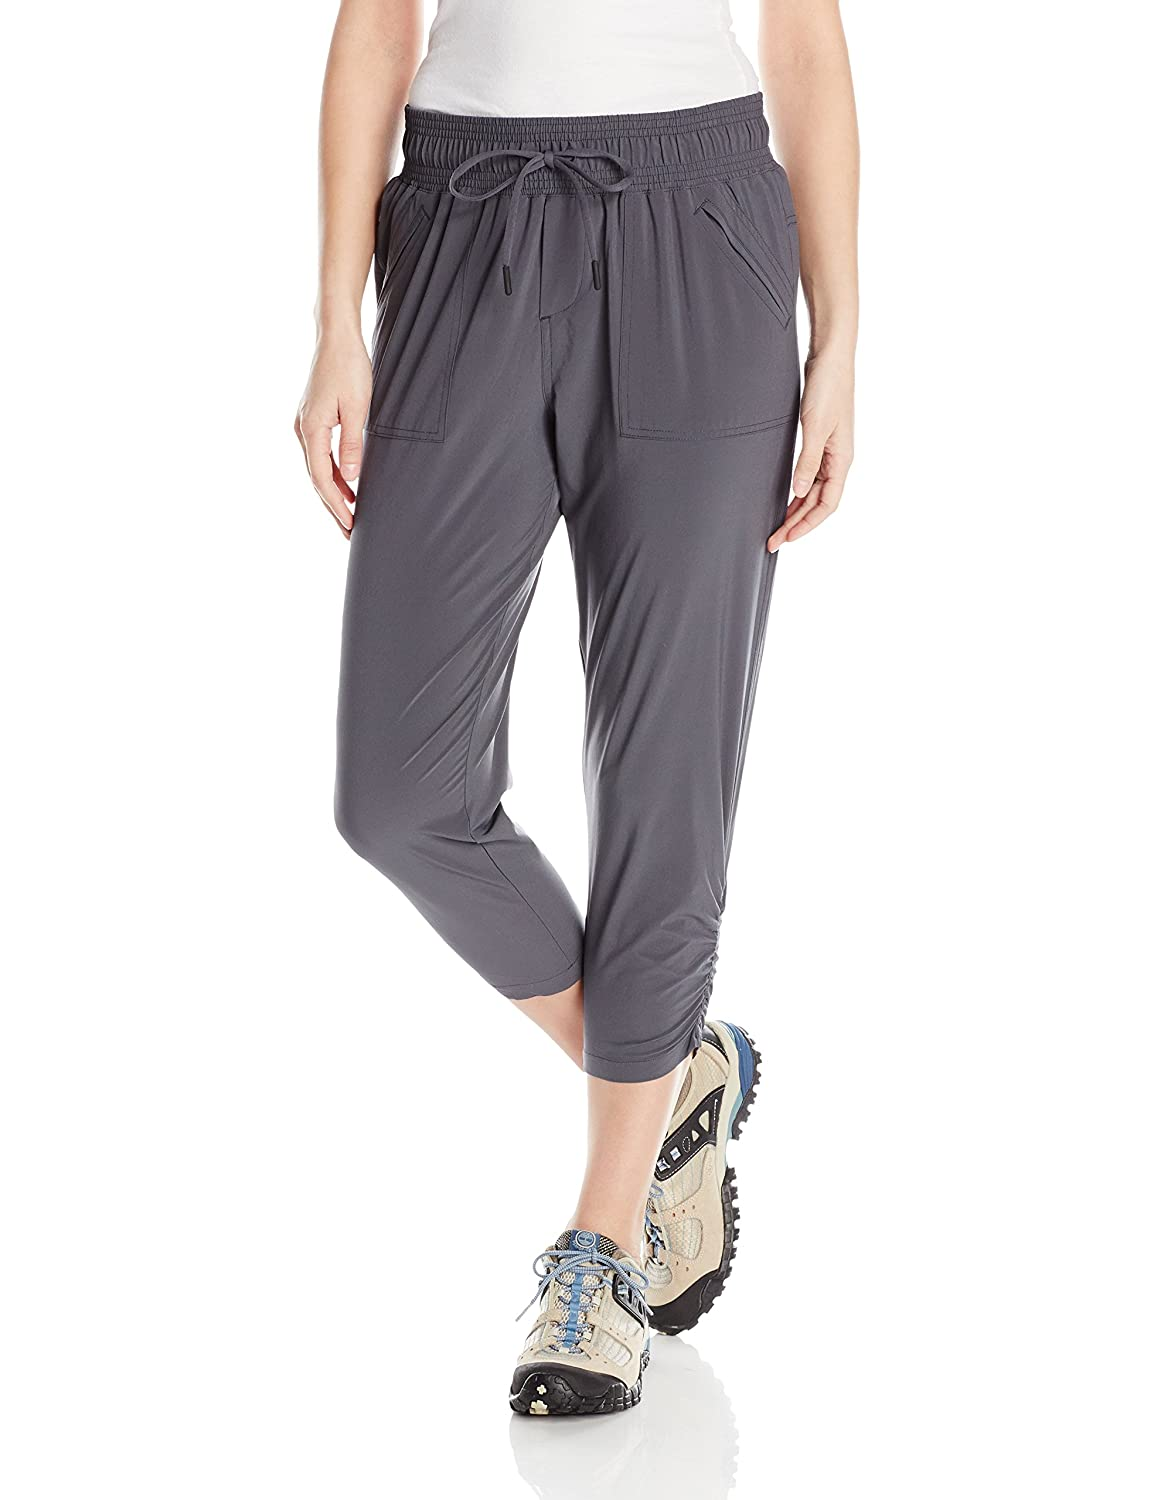 prAna Womens Midtown Capri Prana Sports Apparel W41170120-P